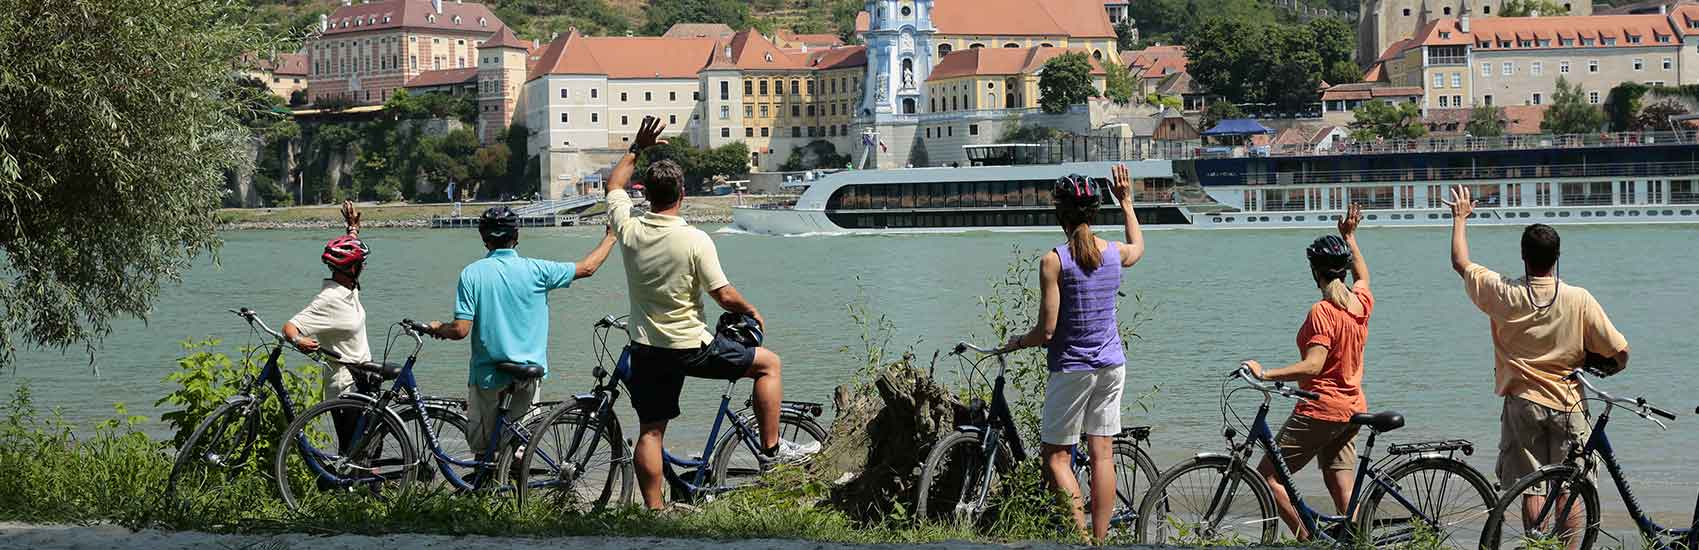 Bike and Hike Along Europe's Rivers 2